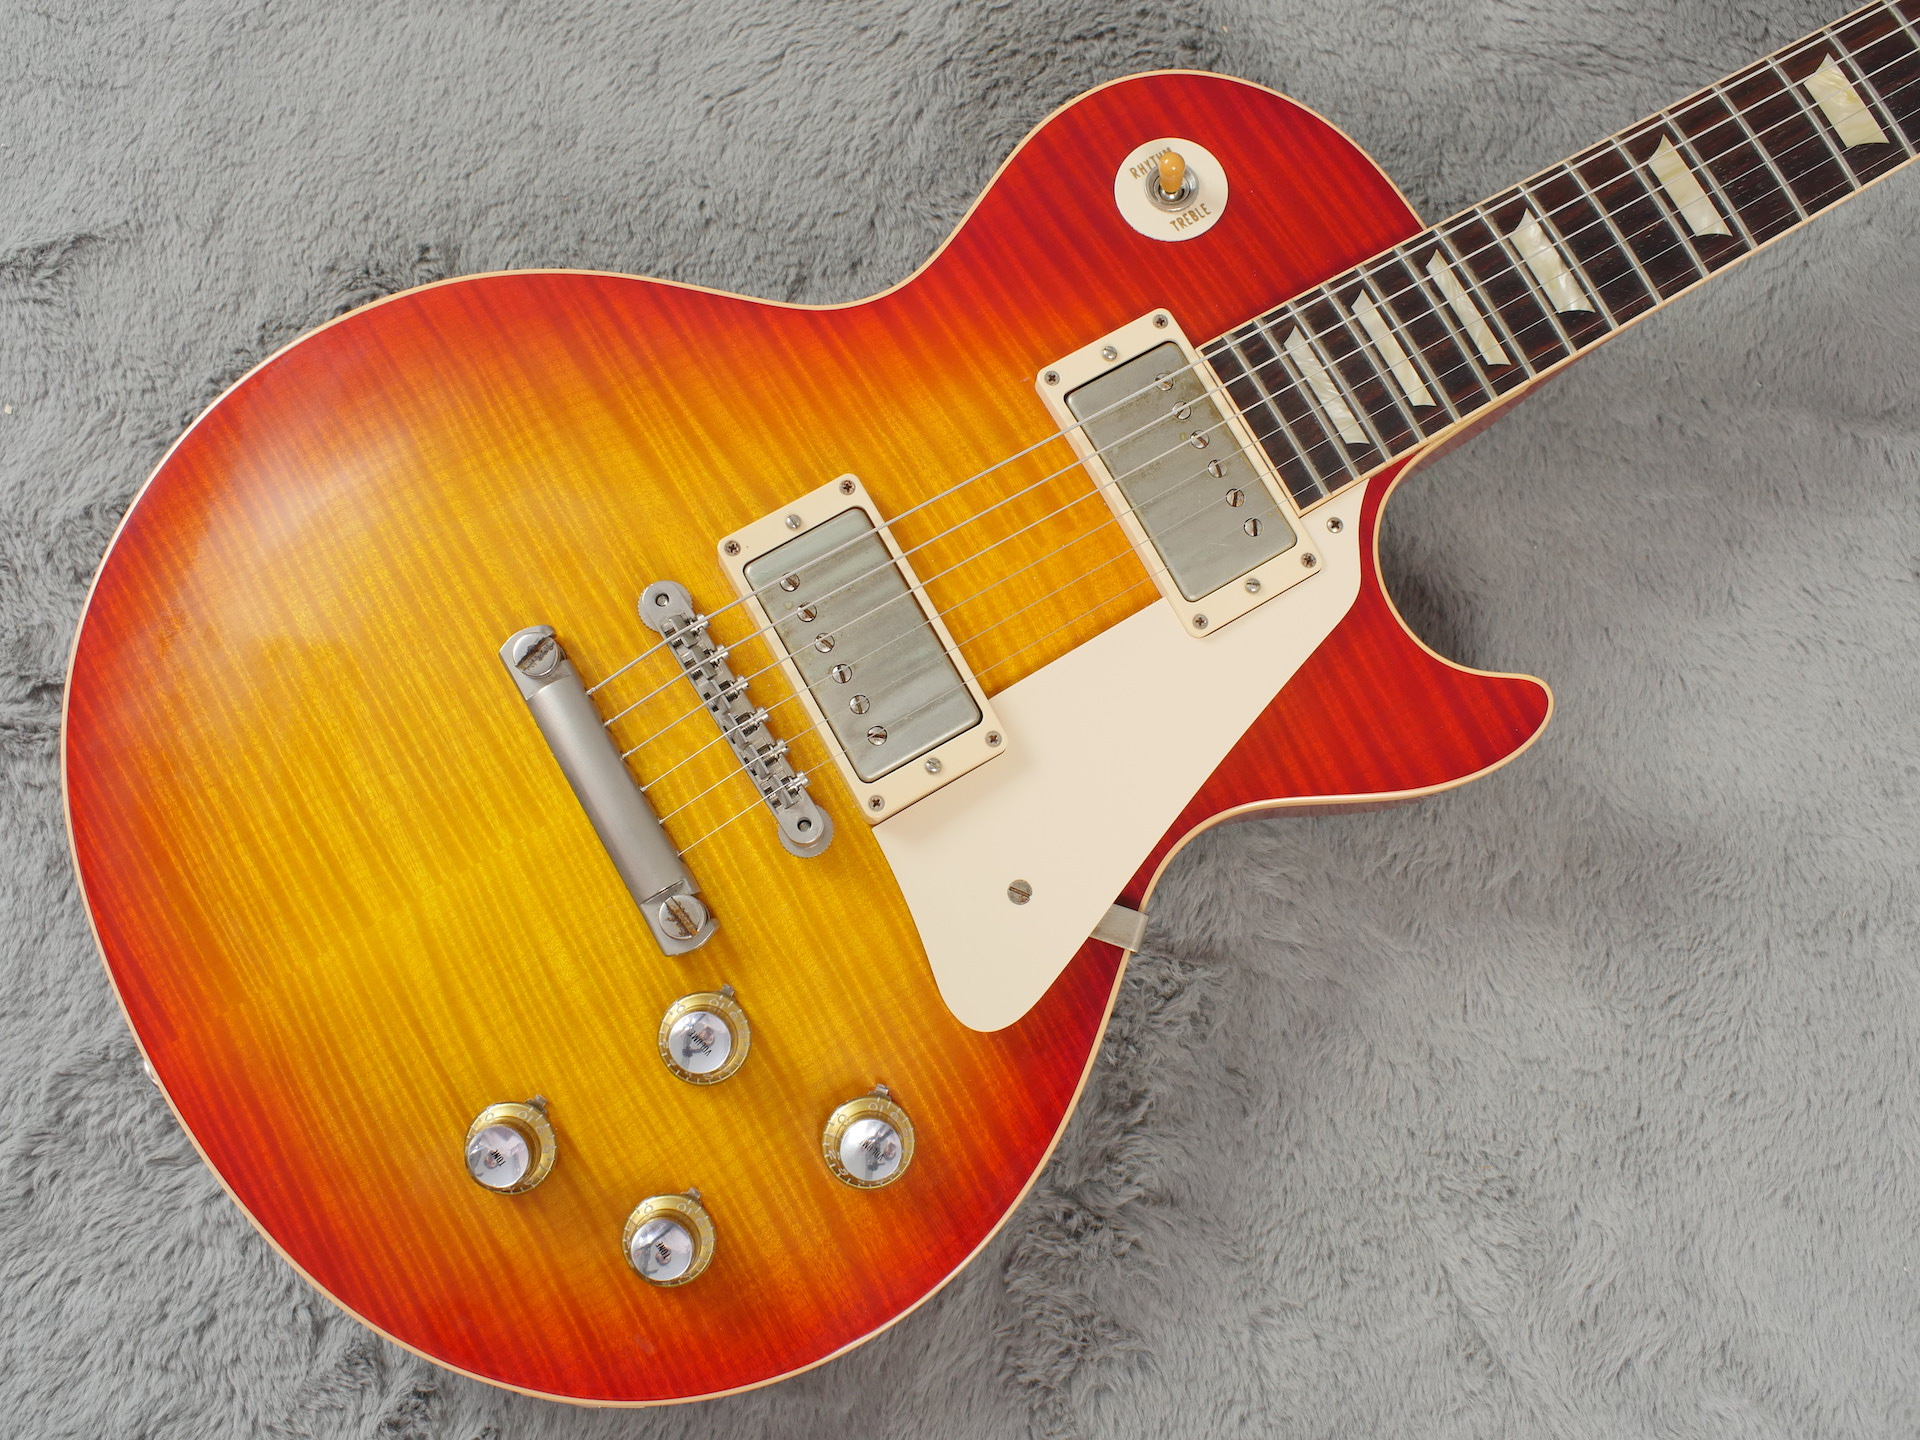 2011 Gibson Custom Shop Les Paul 1960 Historic Reissue VOS (R0)